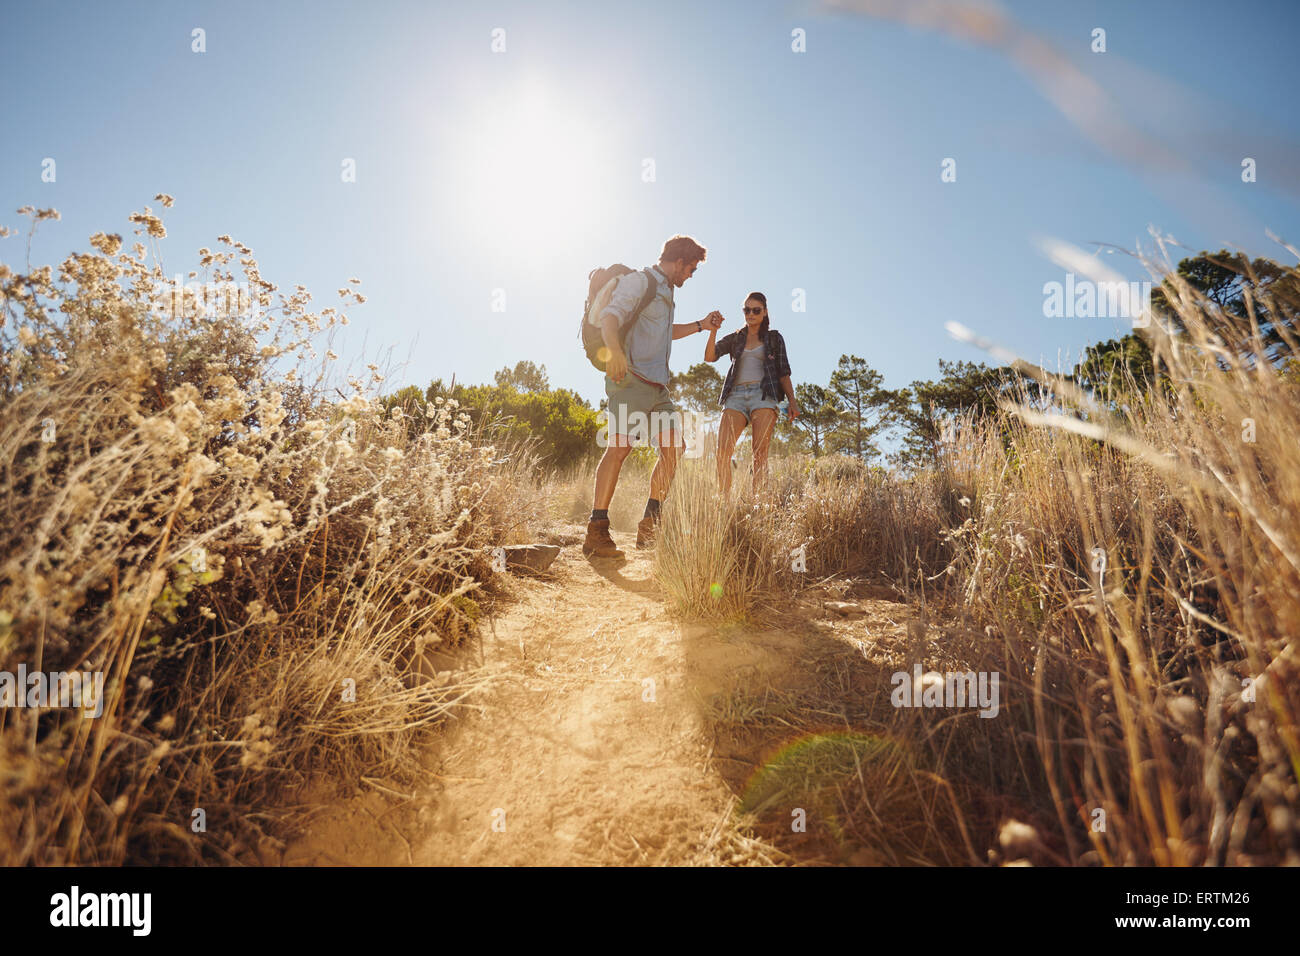 Outdoor shot of young couple on hiking trip, walking on dirt trail in mountains holding hands. Young man and woman - Stock Image